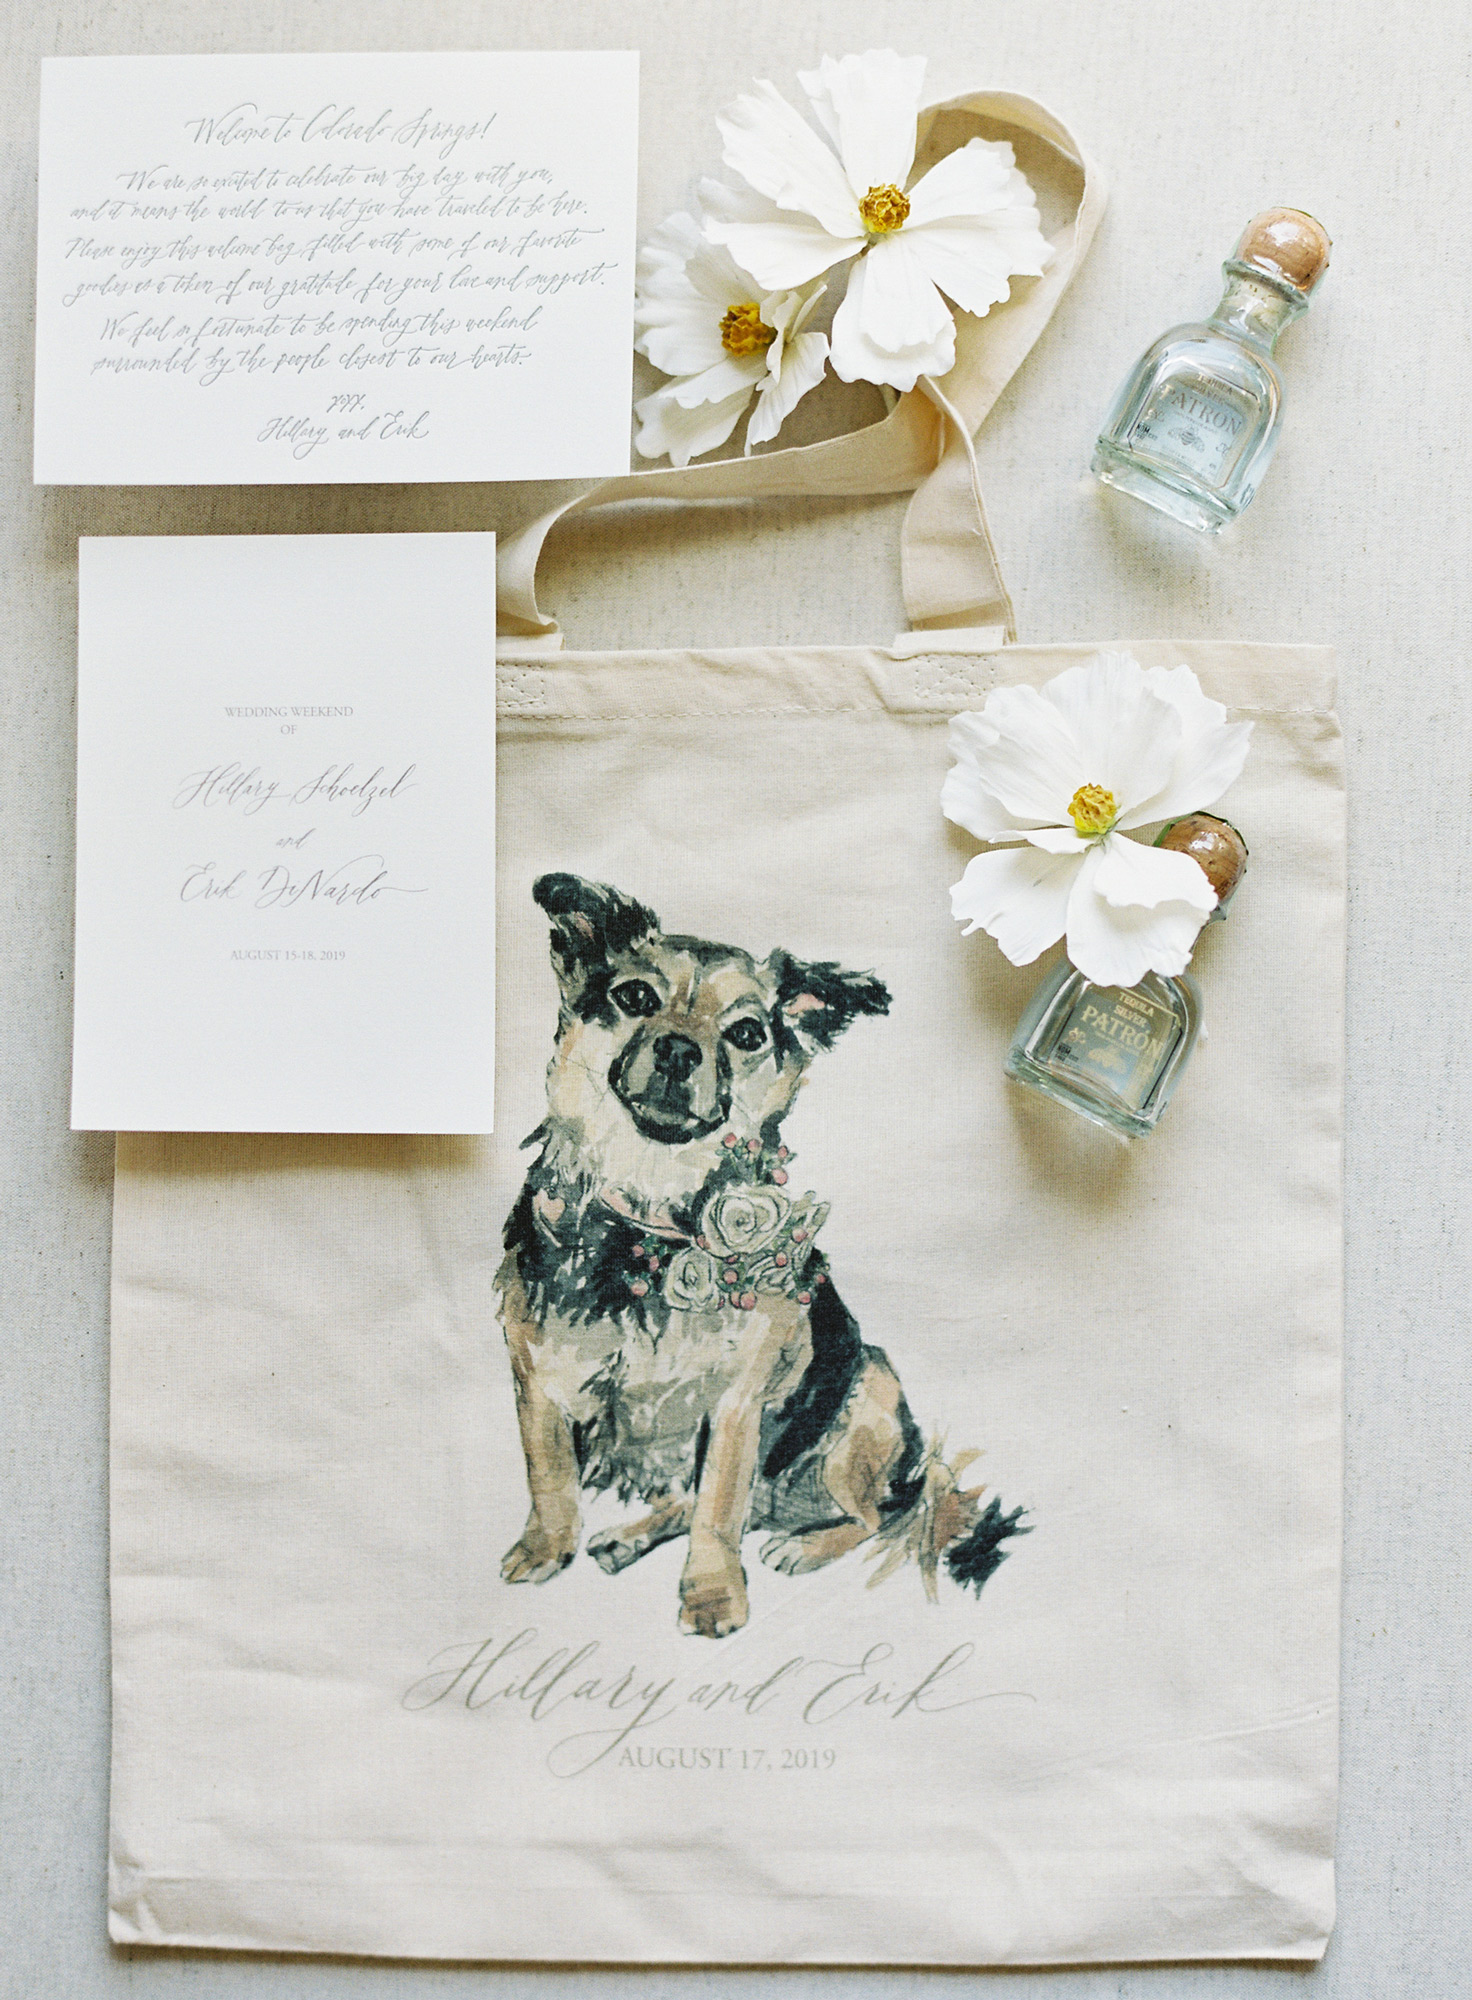 welcome bag decorated with paining of dog and mini bottles of tequila